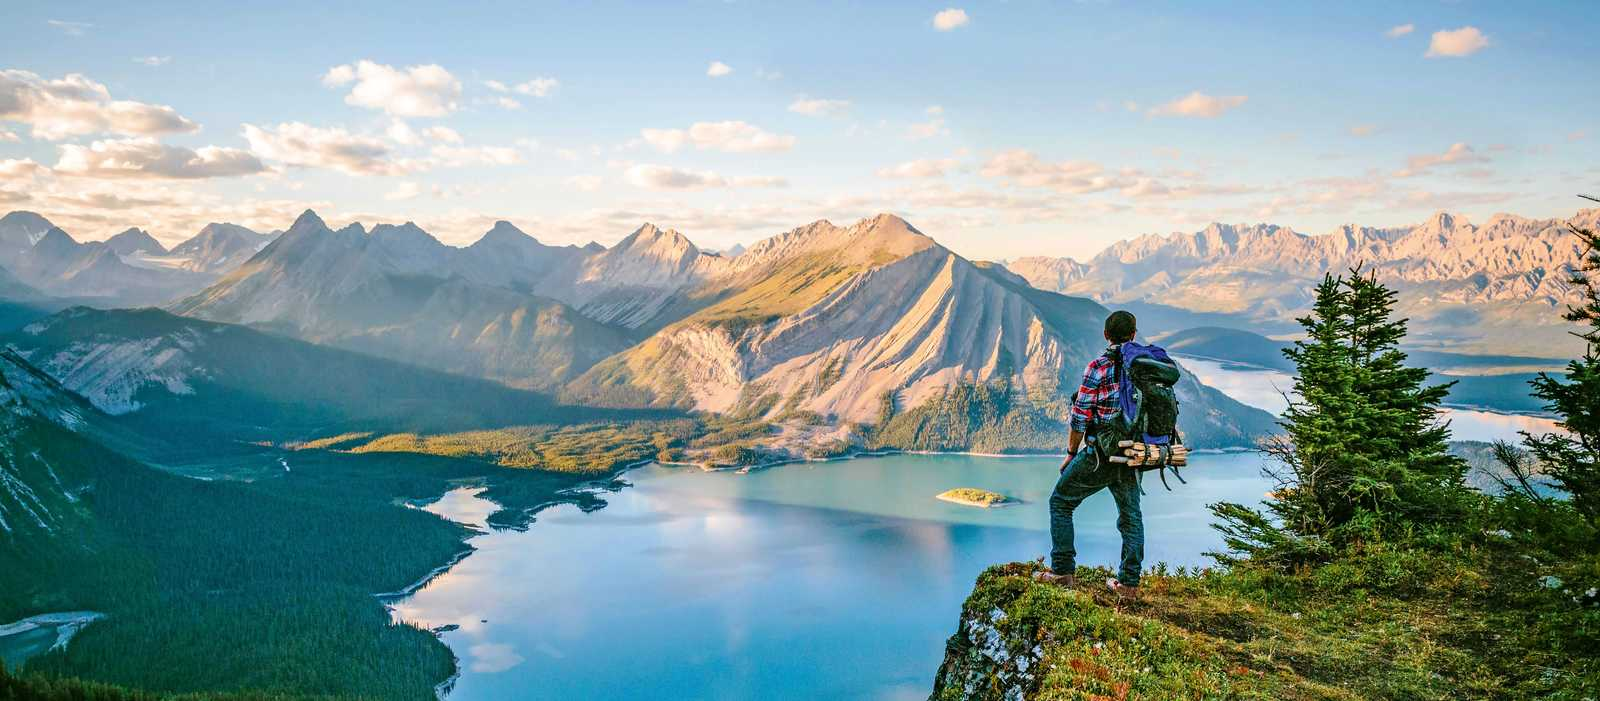 Wanderer blickt auf den Rawson Lake im Waterton Lakes National Park in Alberta